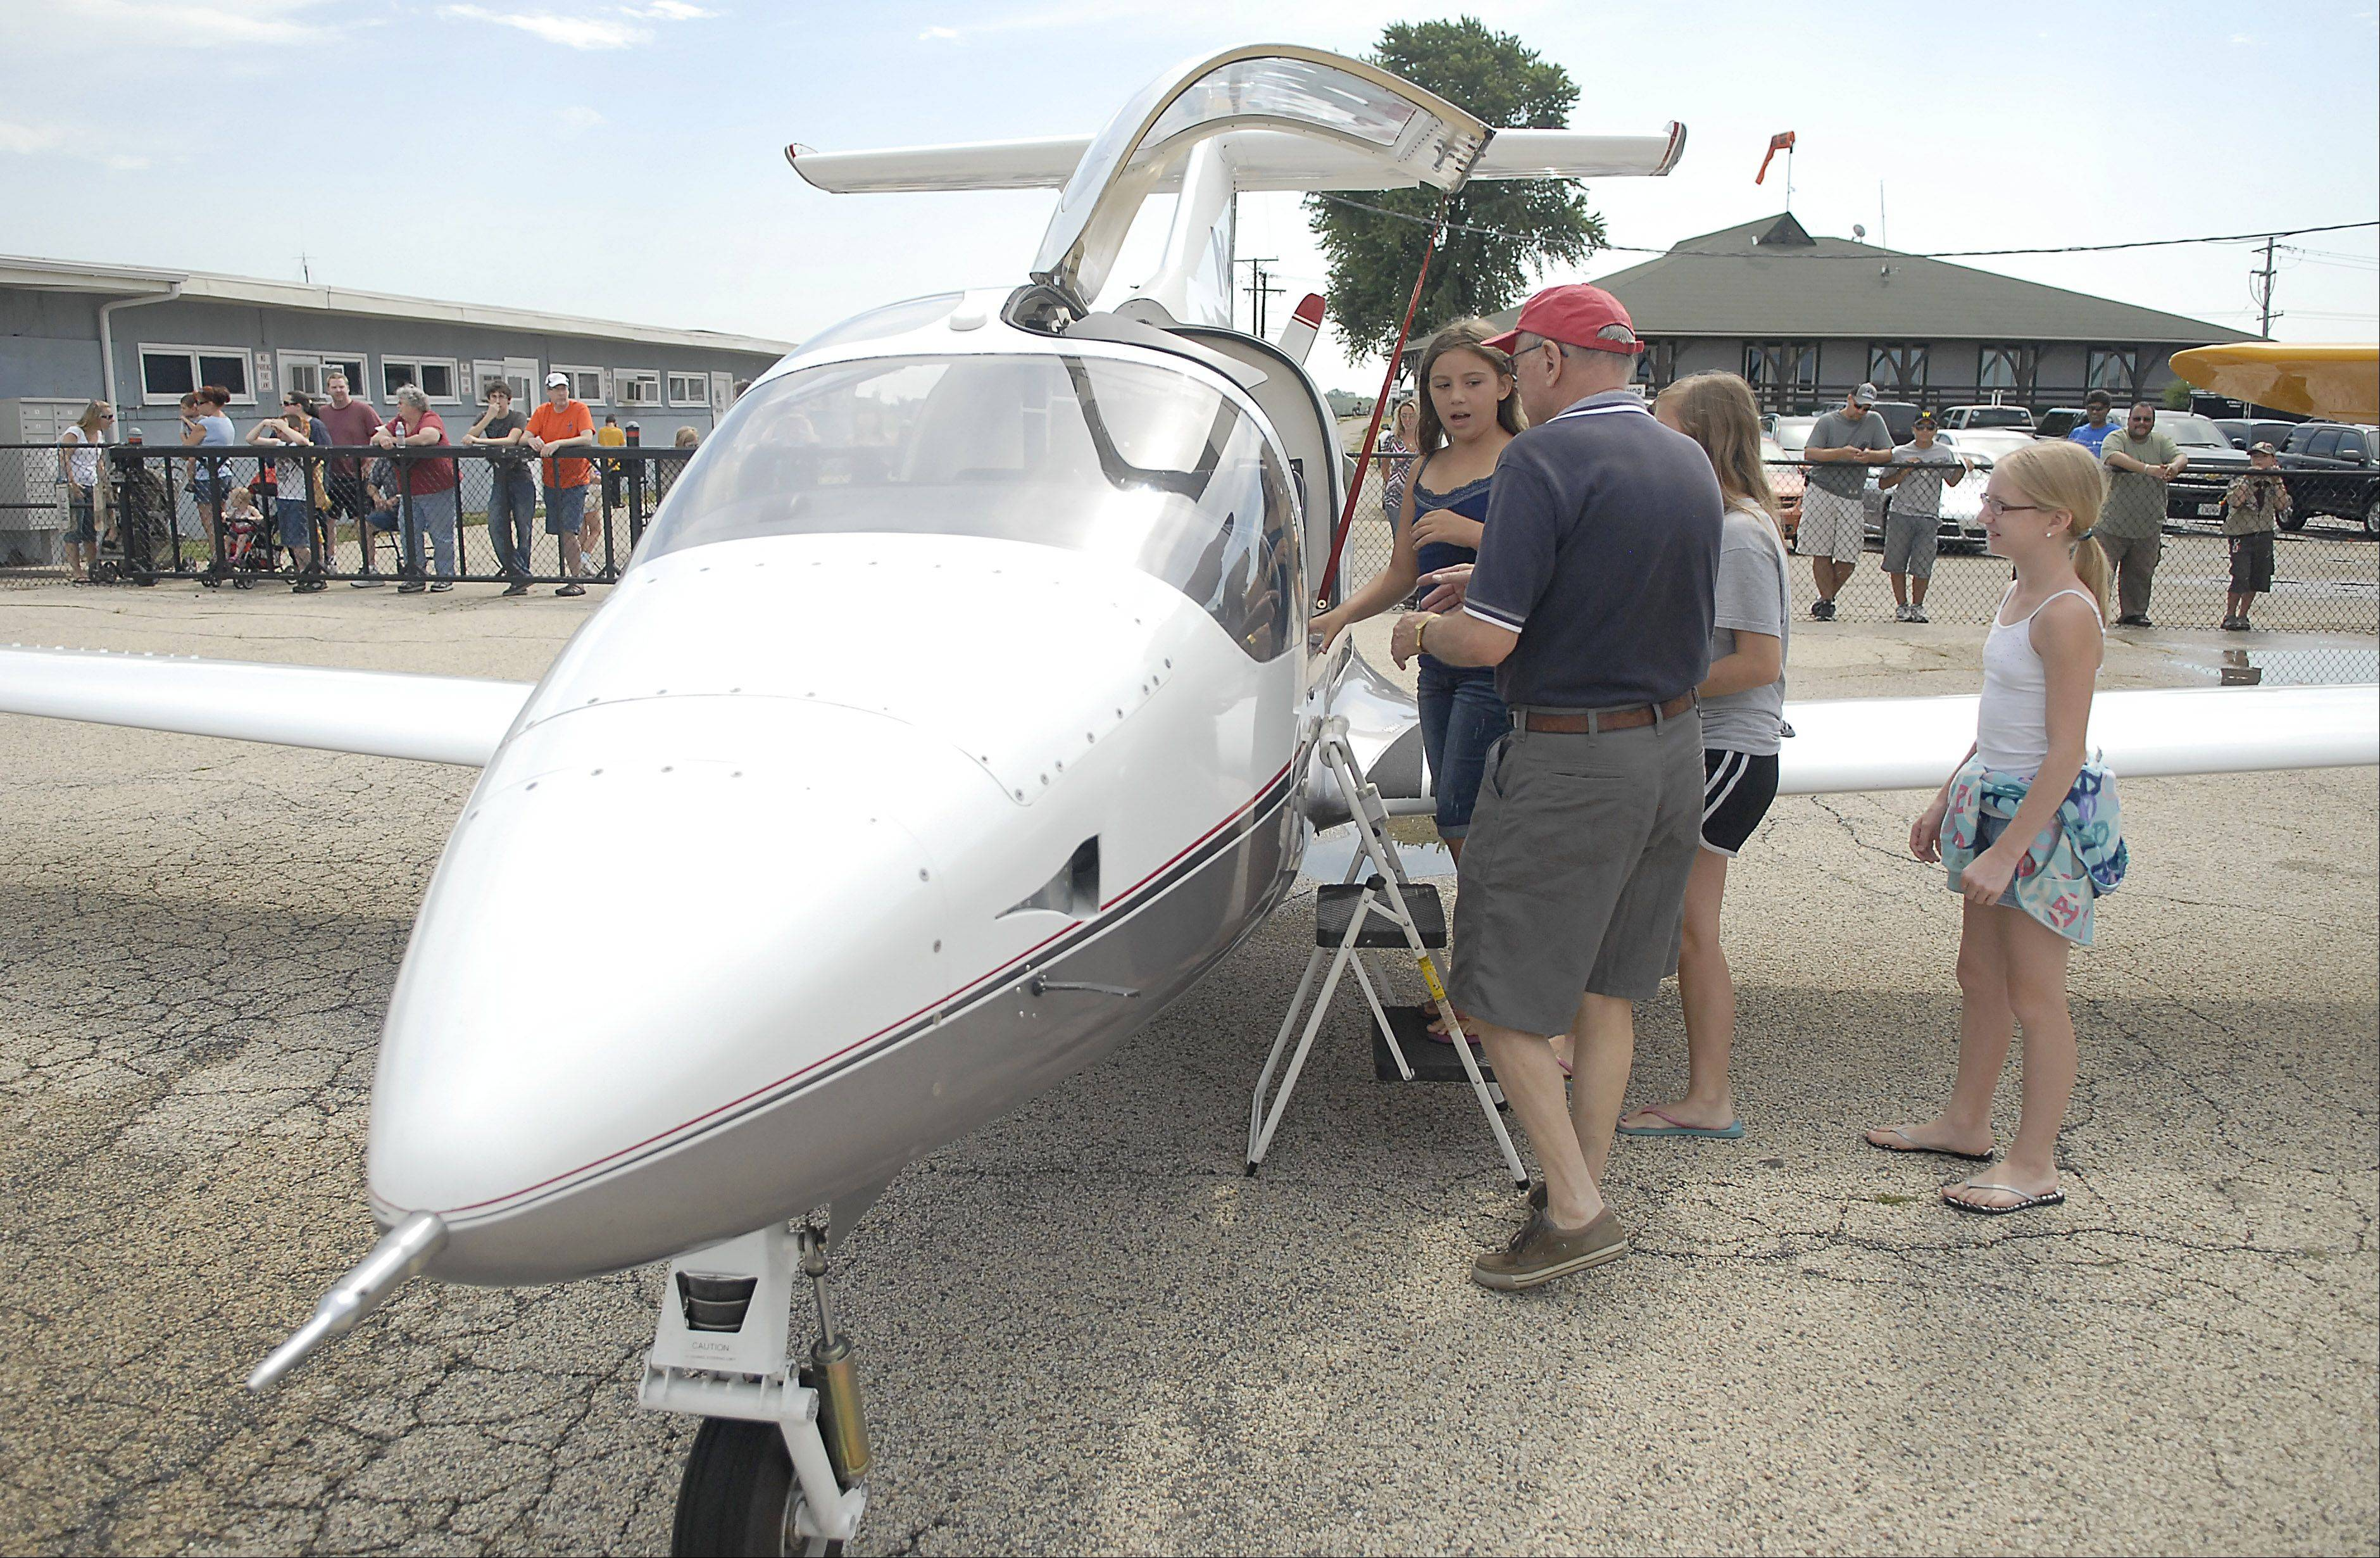 Ole Sindberg of Cary helps Lexi Yates, 9, of Crystal Lake into his Prescott Pusher personal aircraft Saturday for a free flight at the Lake in the Hills Airport. The Young Eagles event offered free flights for children ages 8 to 17 through the EAA Chapter 790.